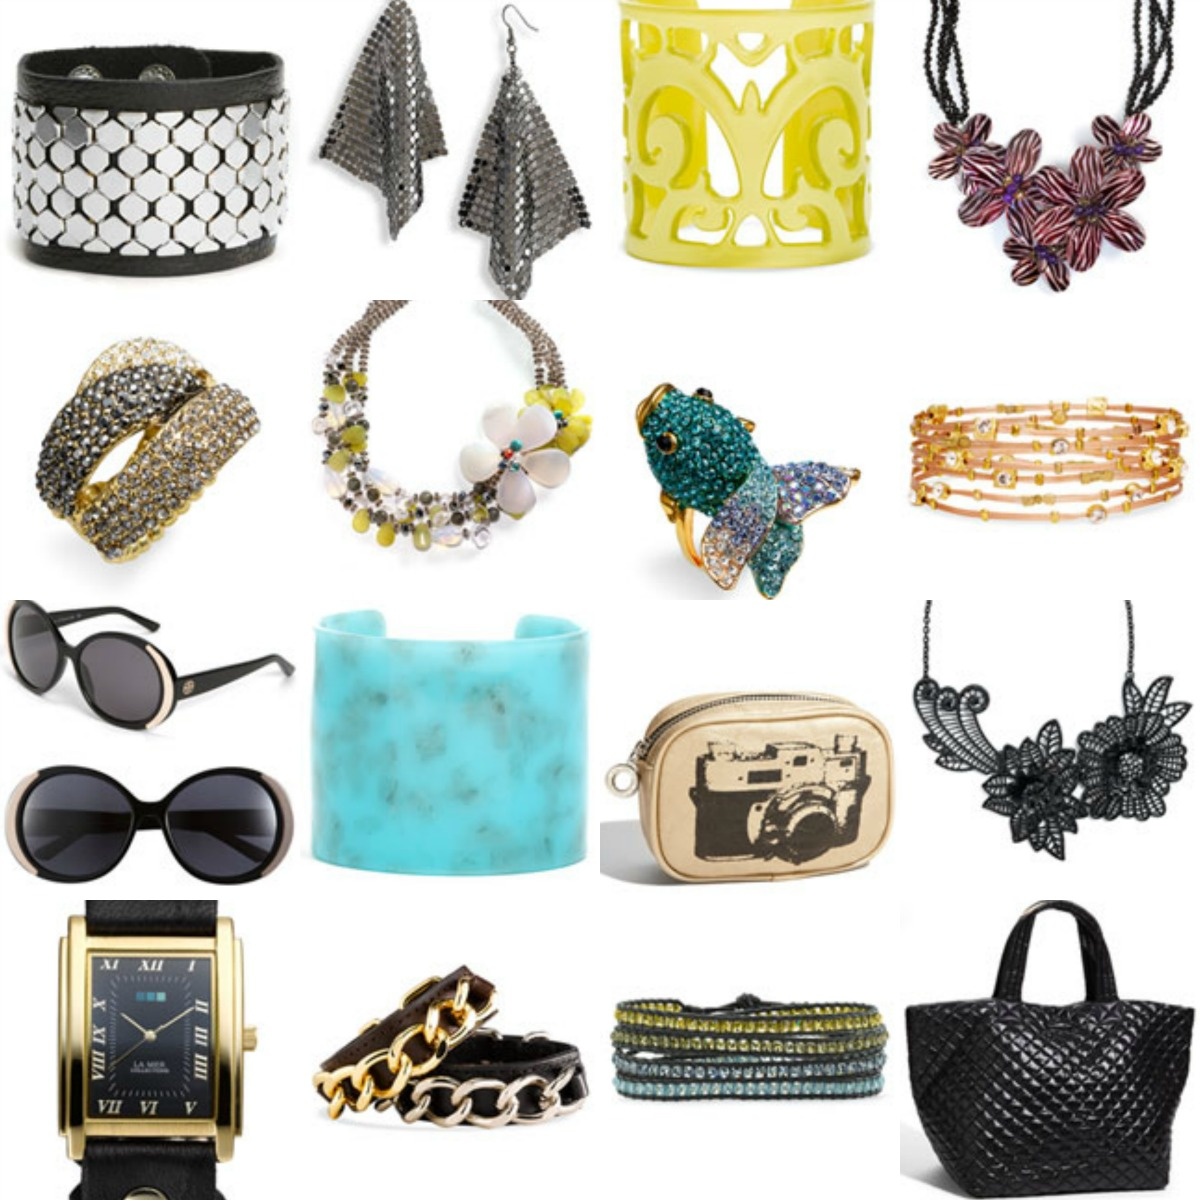 Women's Accessories. Buckle carries a large collection of women's accessories. Find a variety of accessories for women from top brands, including BKE, Fossil, Stance and more. Shop women's accessories to find bracelets, earrings, necklaces, scarves, .